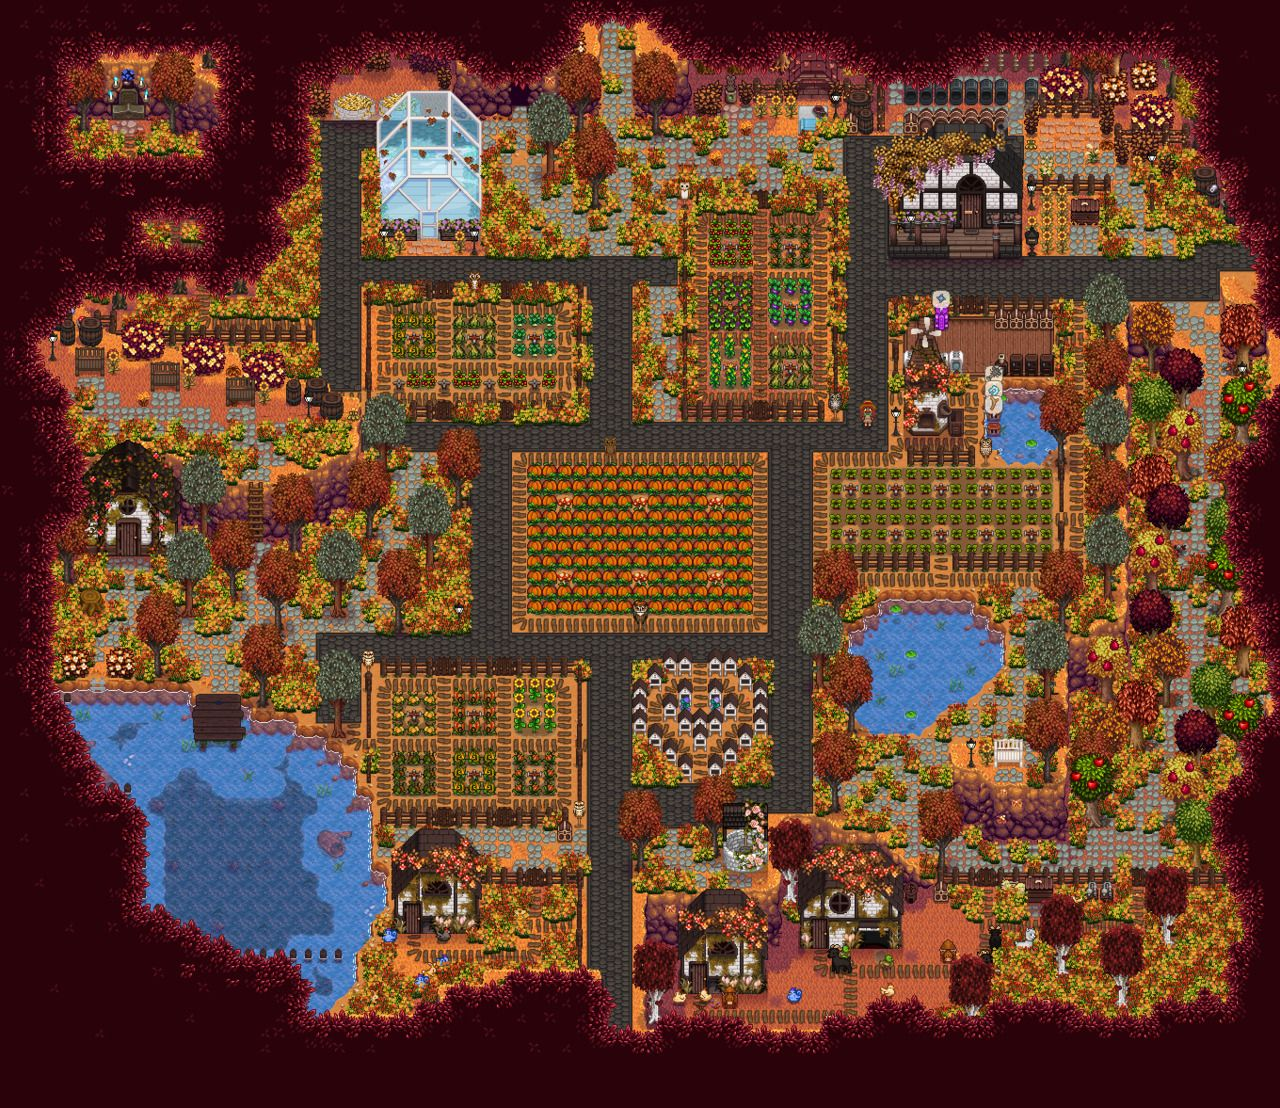 Pin By Viperdread777 On Stardew Valley Stardew Valley Stardew Valley Farms Valley